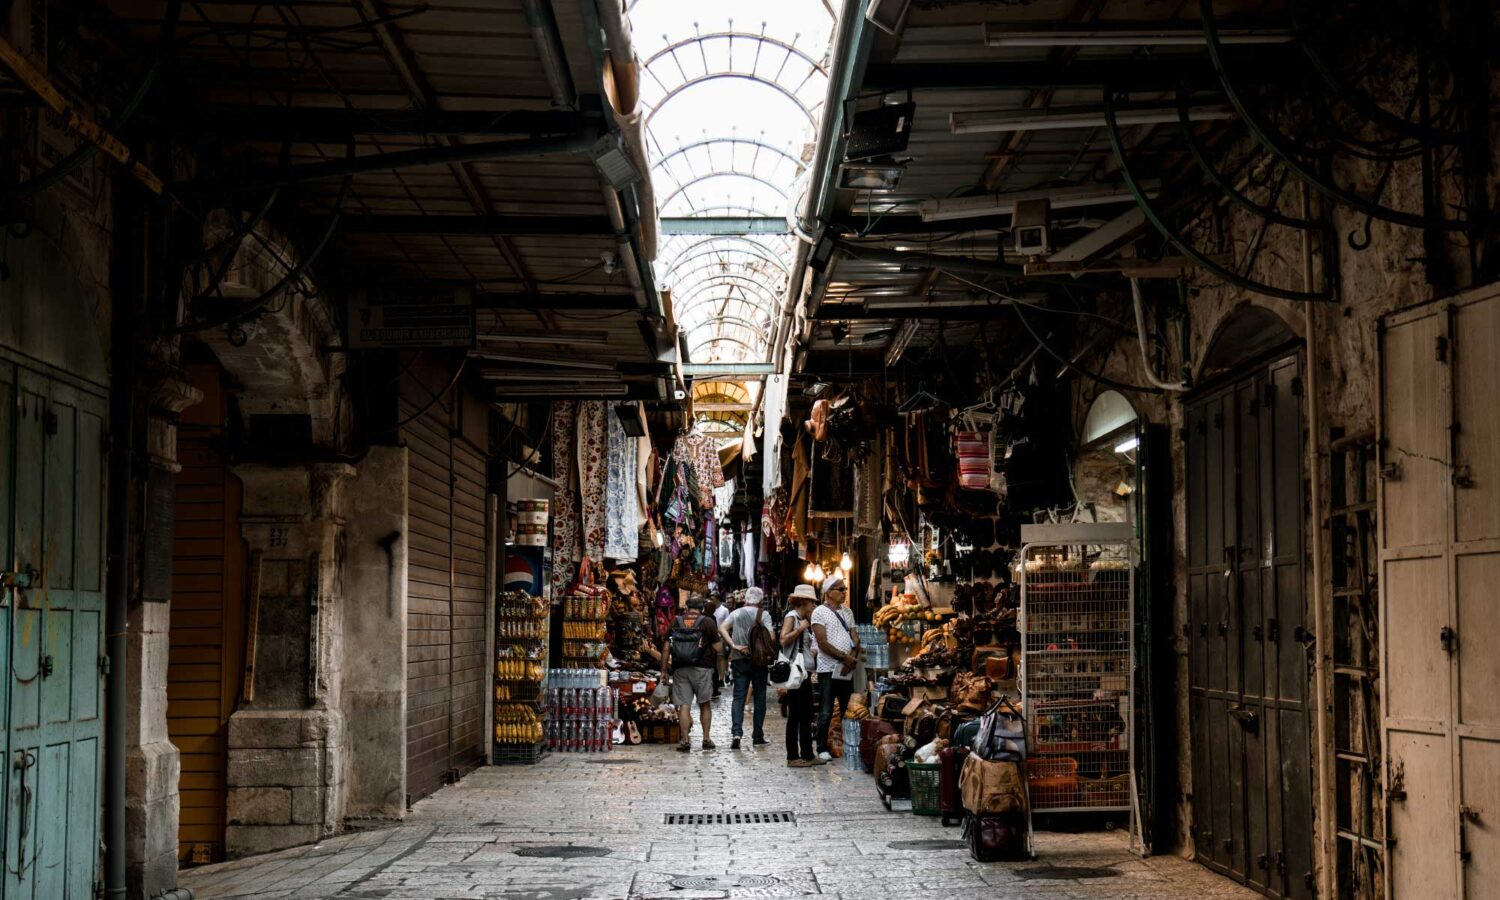 Arab Market in the Muslim Quarter, a must stop on any Jerusalem itinerary